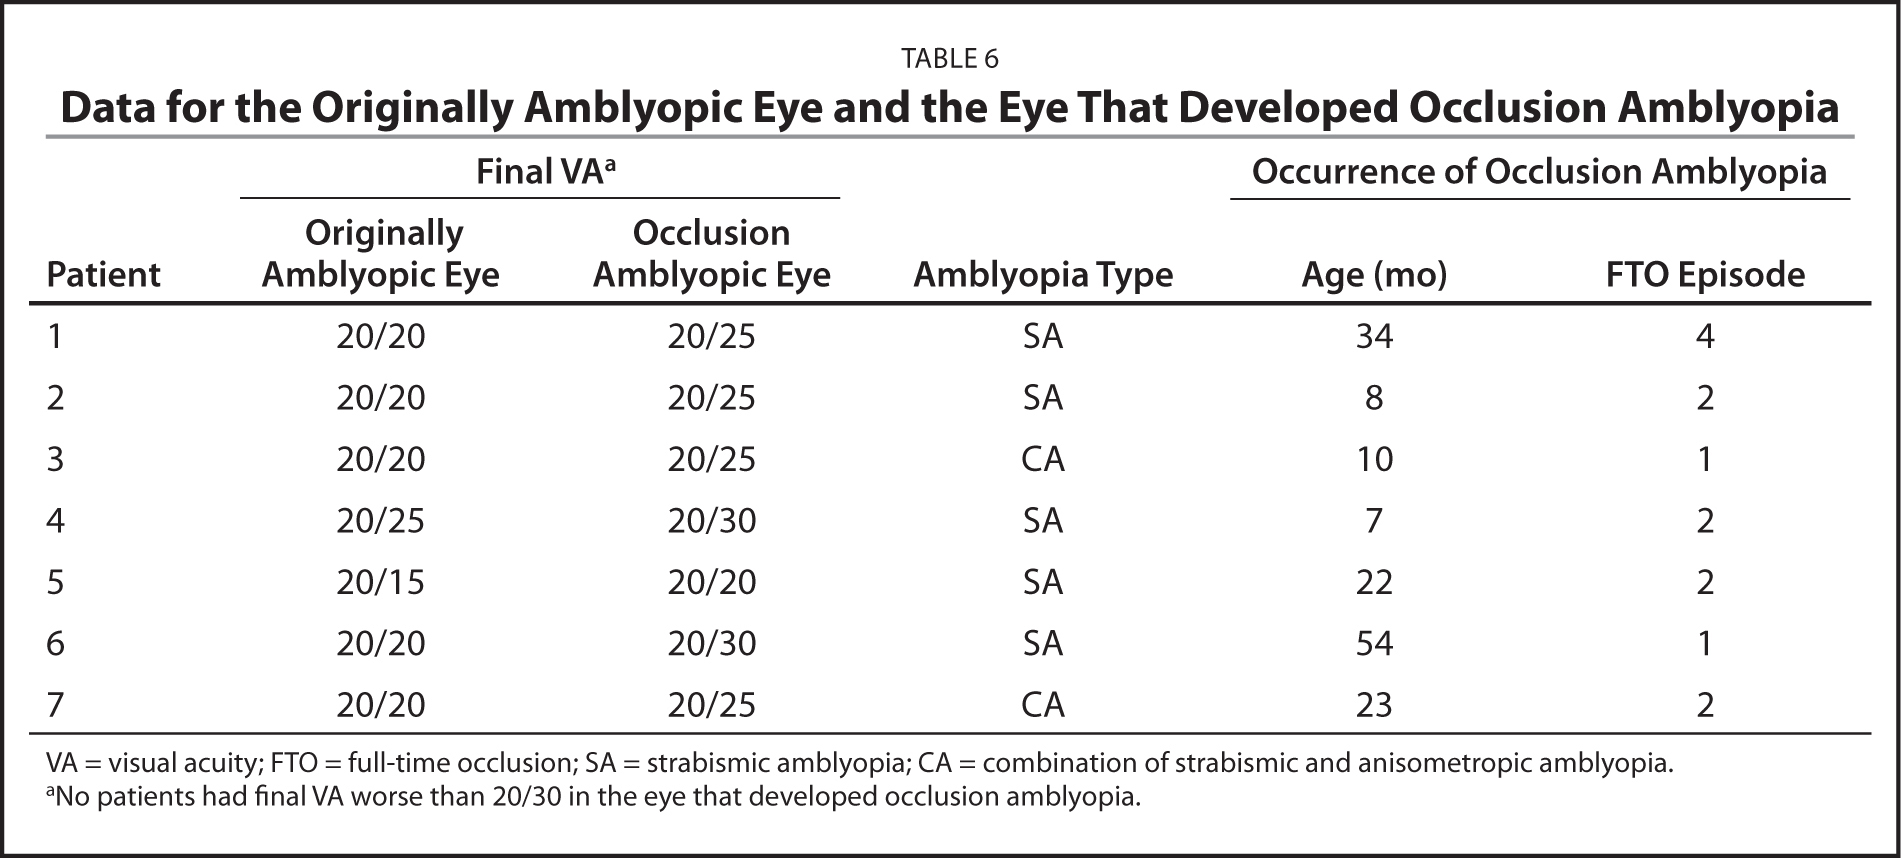 Data for the Originally Amblyopic Eye and the Eye That Developed Occlusion Amblyopia